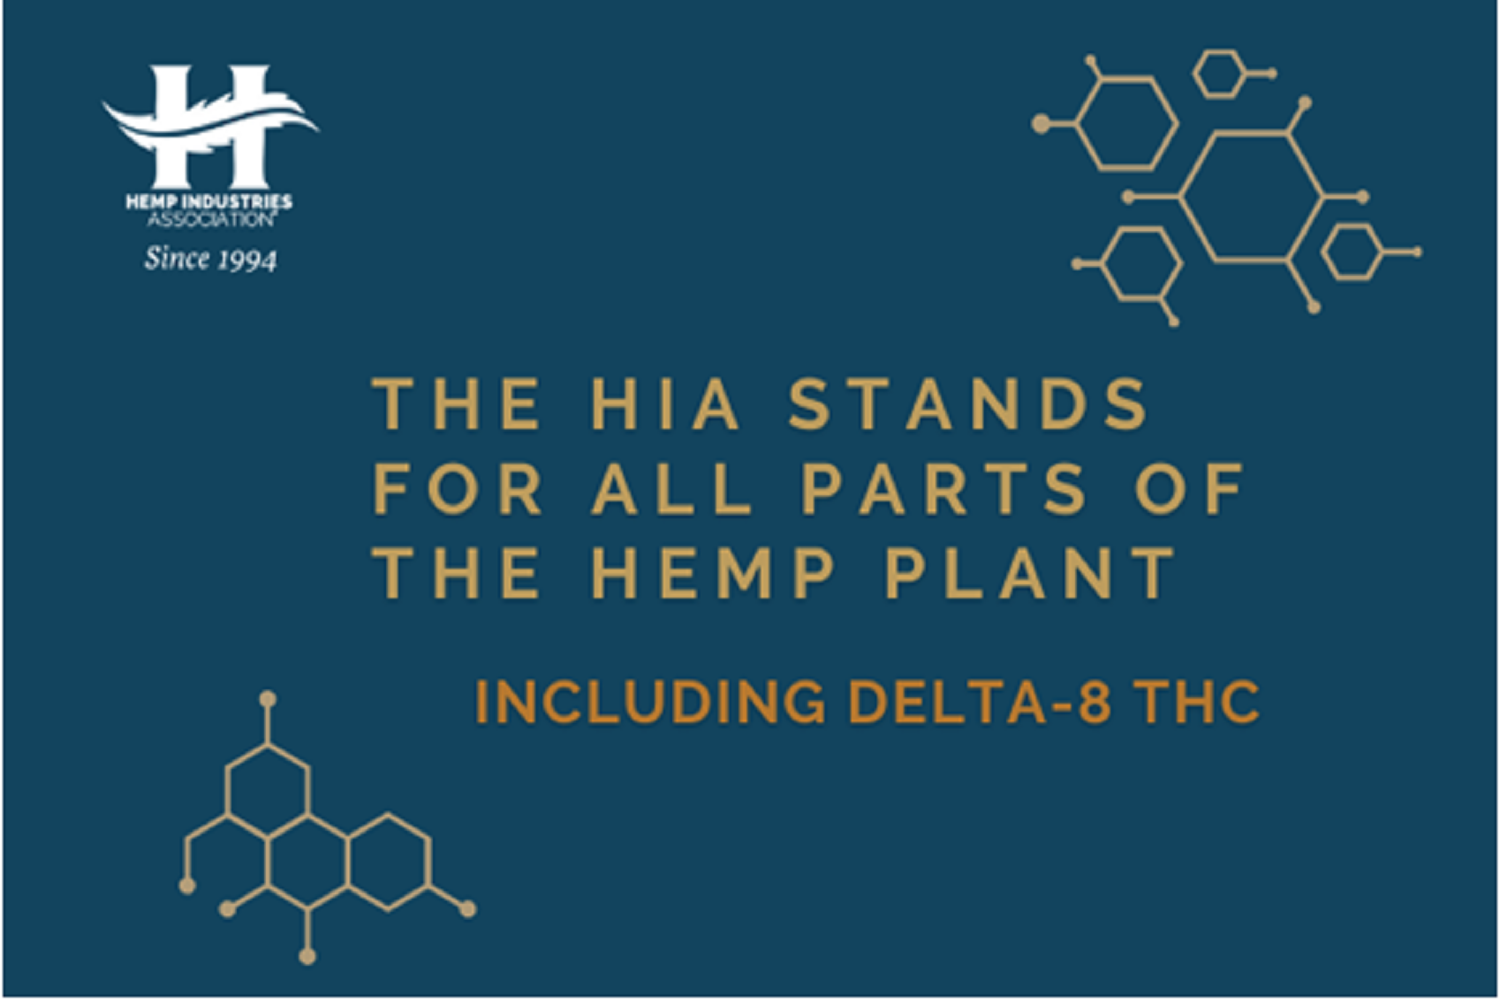 The Hemp Industries Association announced its position that all hemp-derived cannabinoids are Federally legal, Including Delta-8 THC...